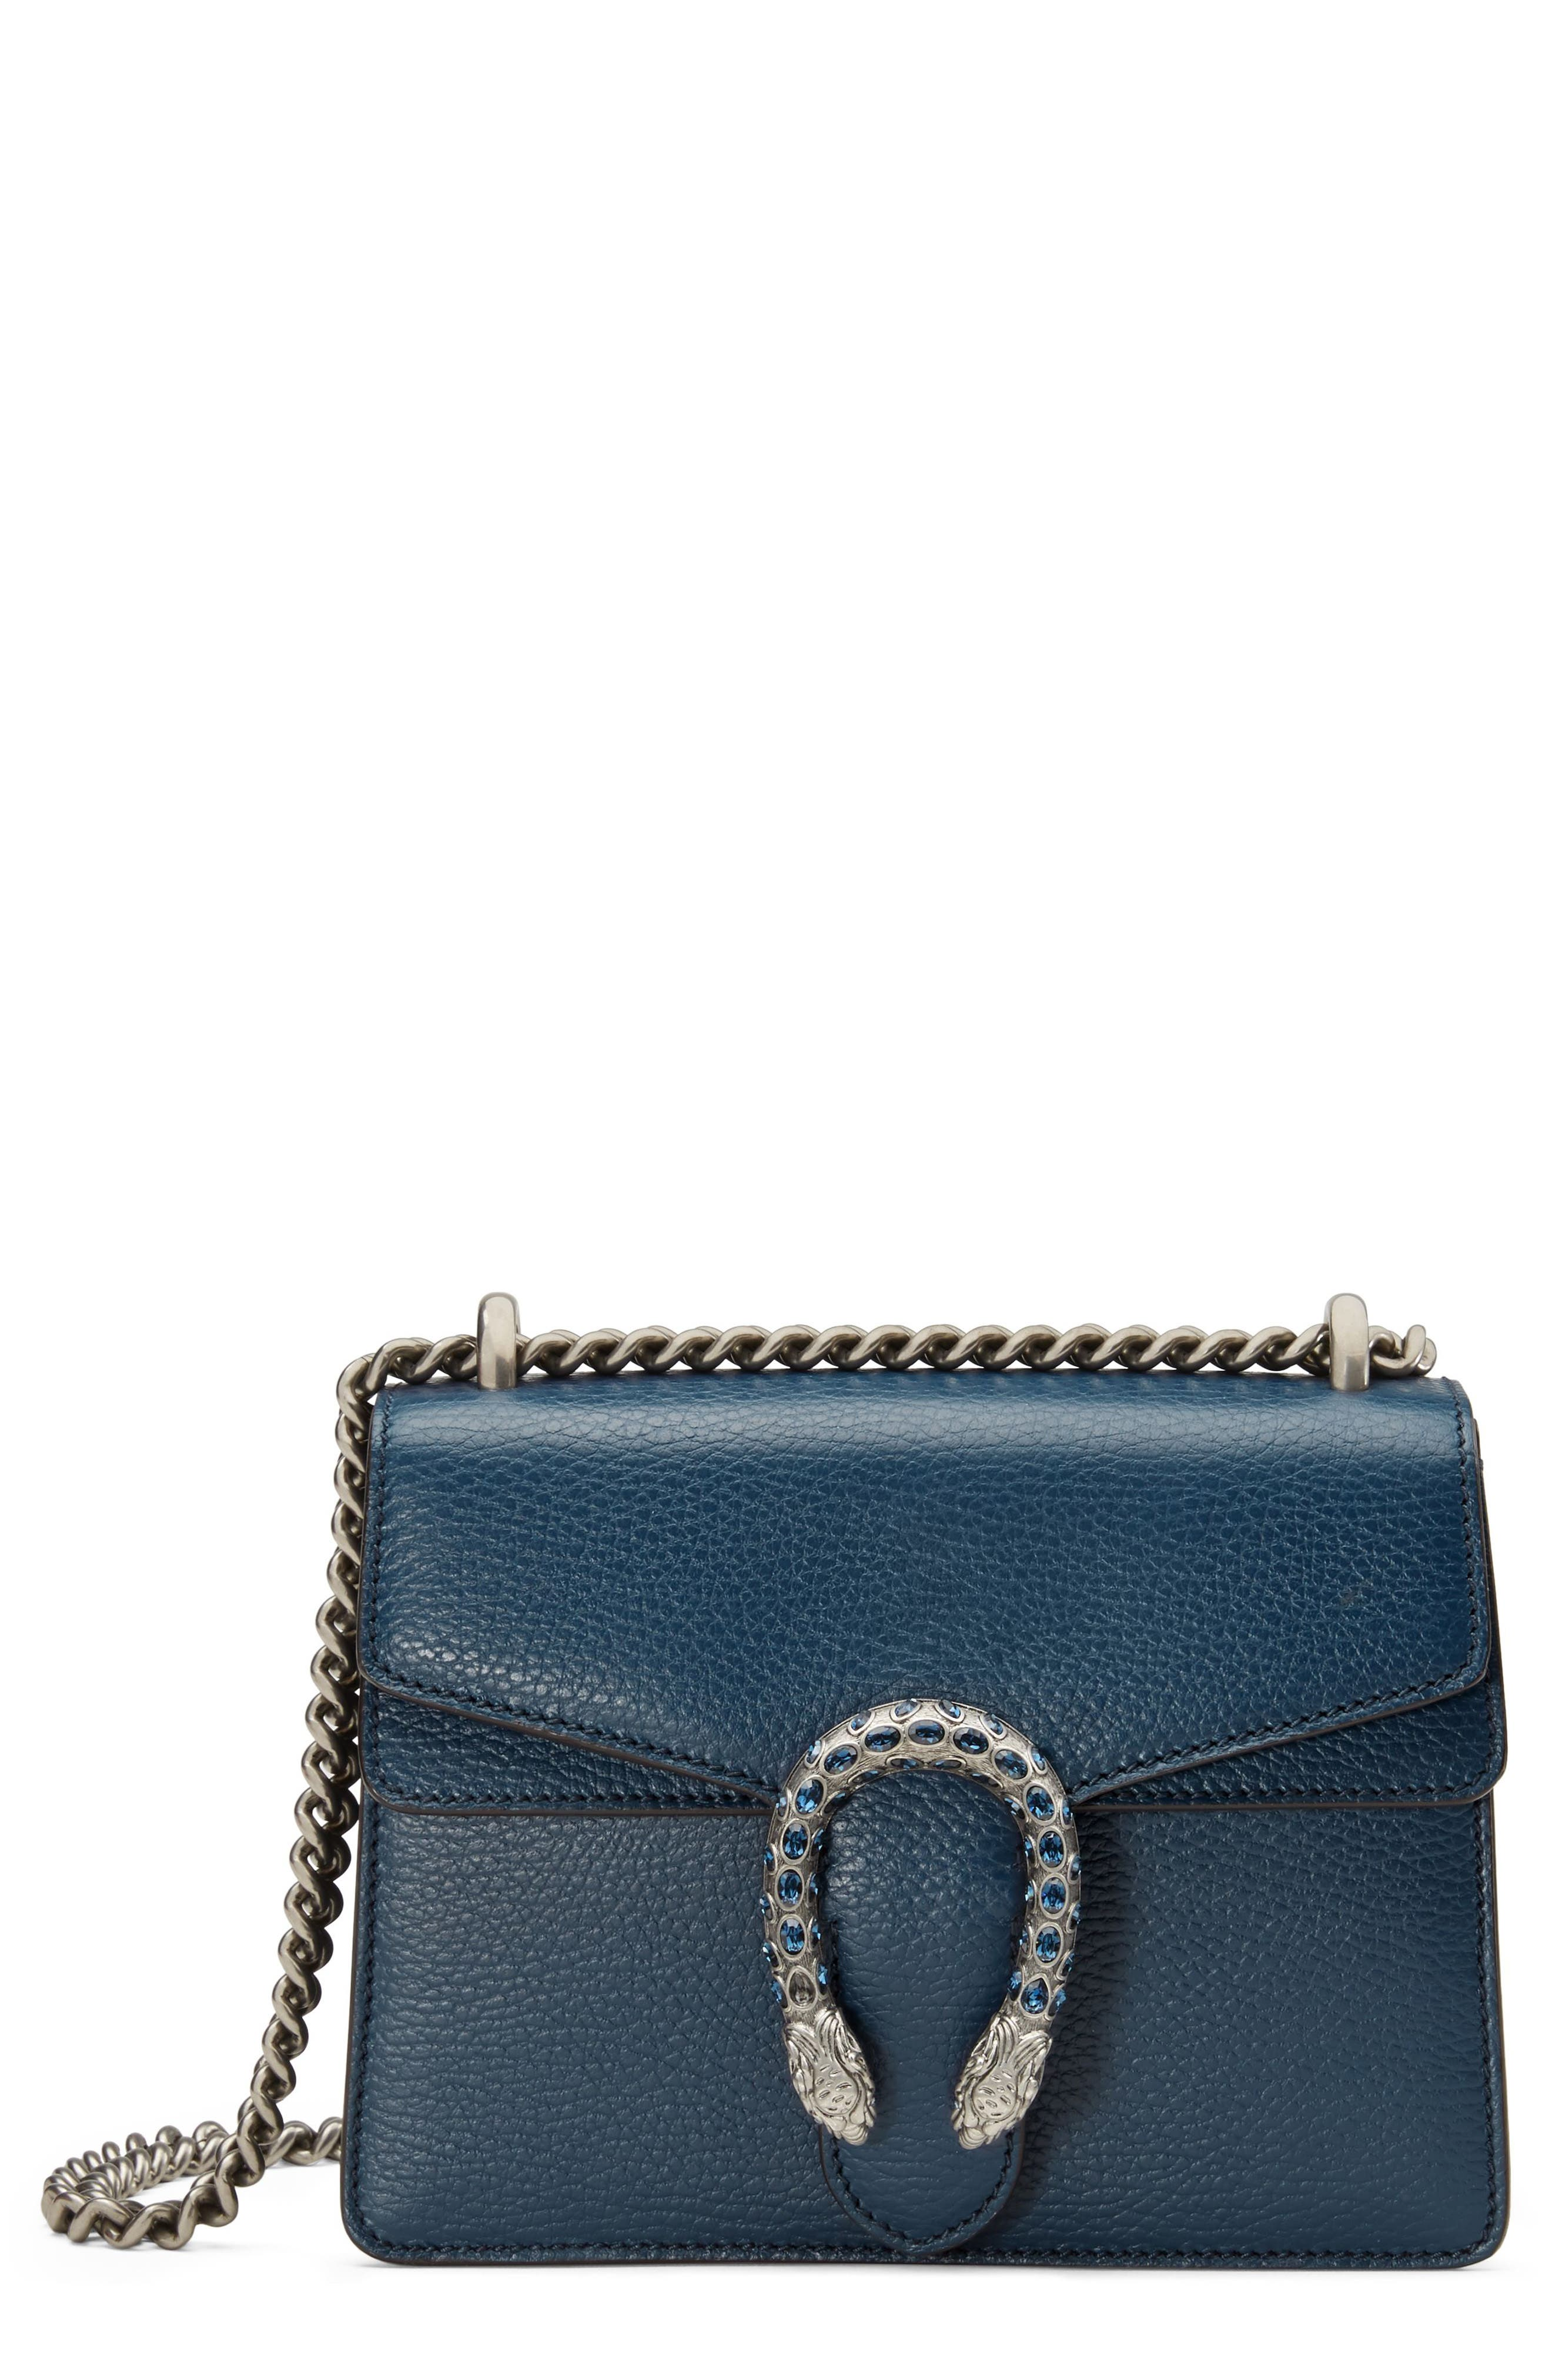 Mini Dionysus Leather Shoulder Bag,                         Main,                         color, BLU AGATA/ MONTANA